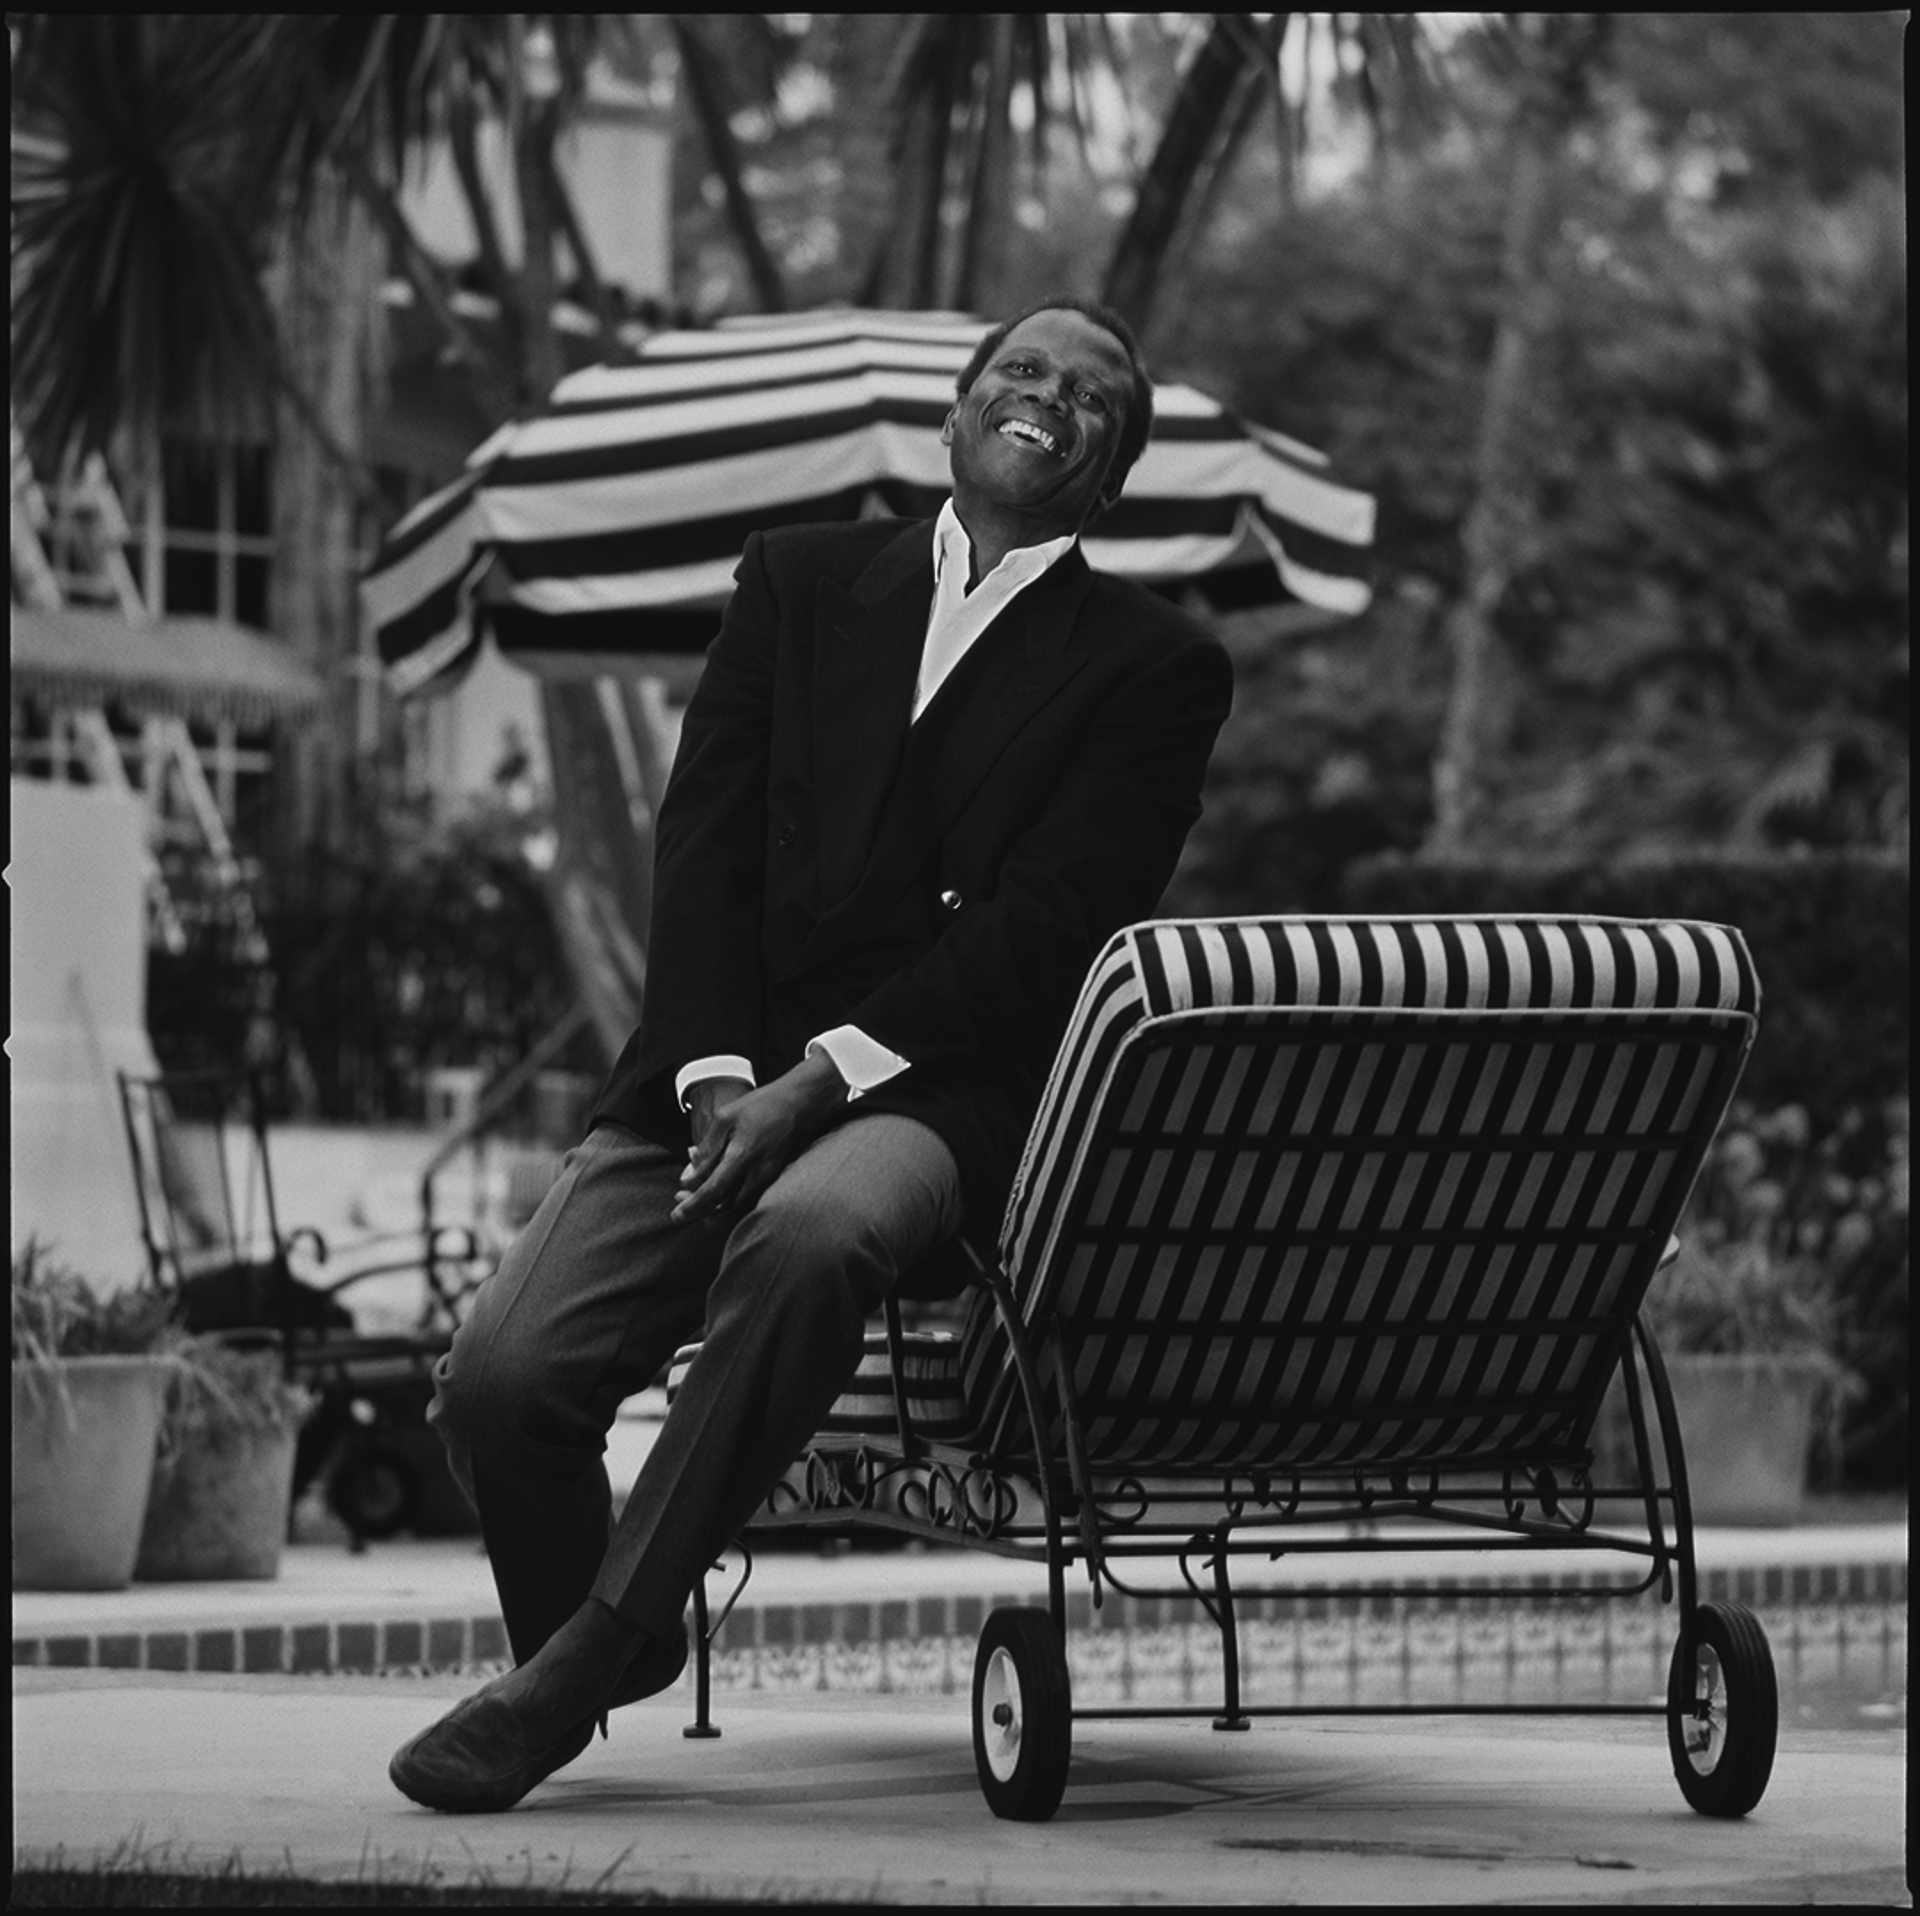 87125 Sidney Poitier Laughing on the Chaise BW by Timothy White